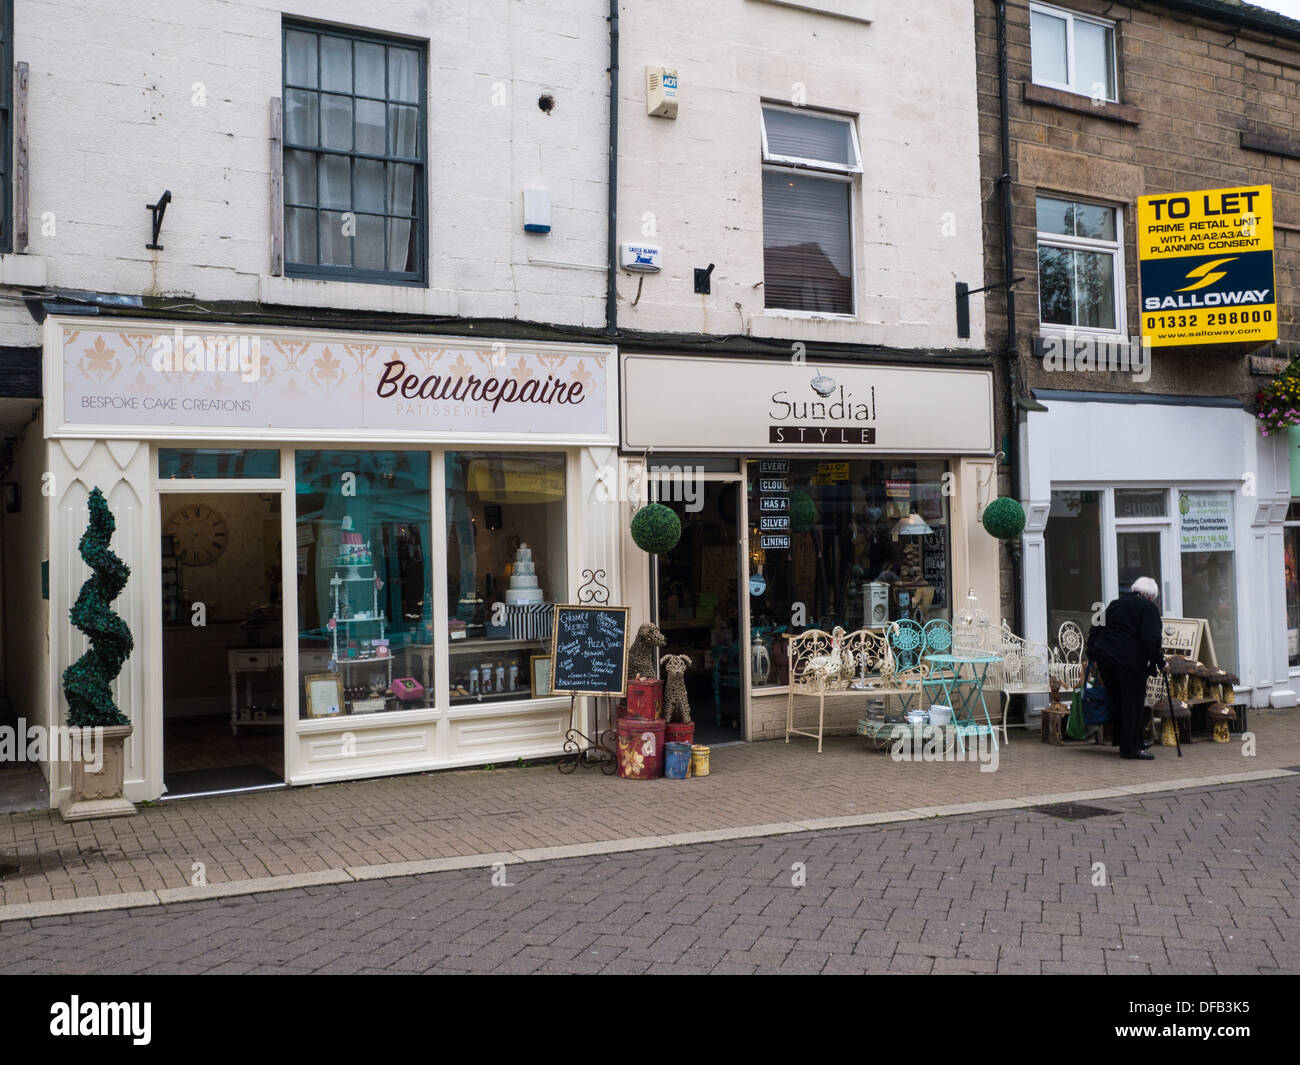 Beaurepaire Bespoke Cake Creations and Sundial Style antique furniture shop in Belper, Derbyshire, United Kingdom. - Stock Image